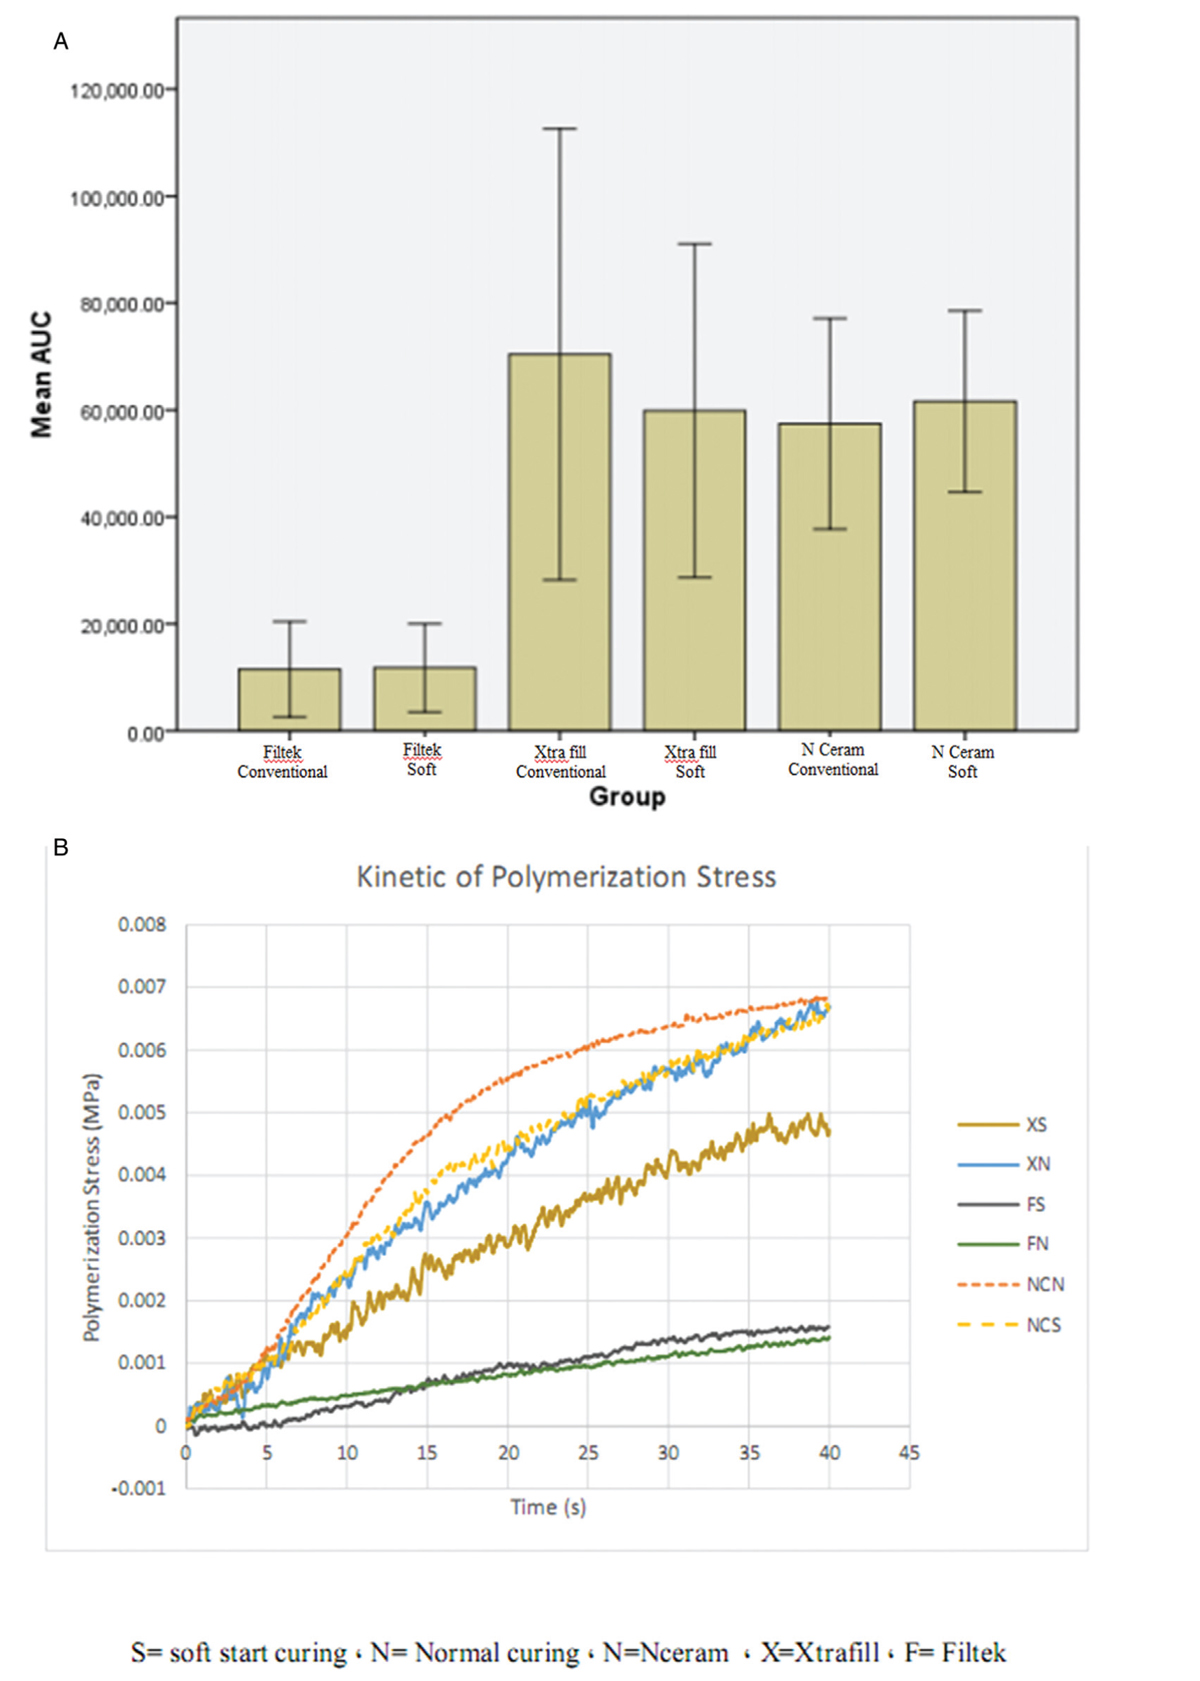 Figure 2 a) shrinkage stress at 40 s. b) Comparison of the shrinkage stress pattern as a function of time for three bulk-fill resin composites cured with two photo-activation methods